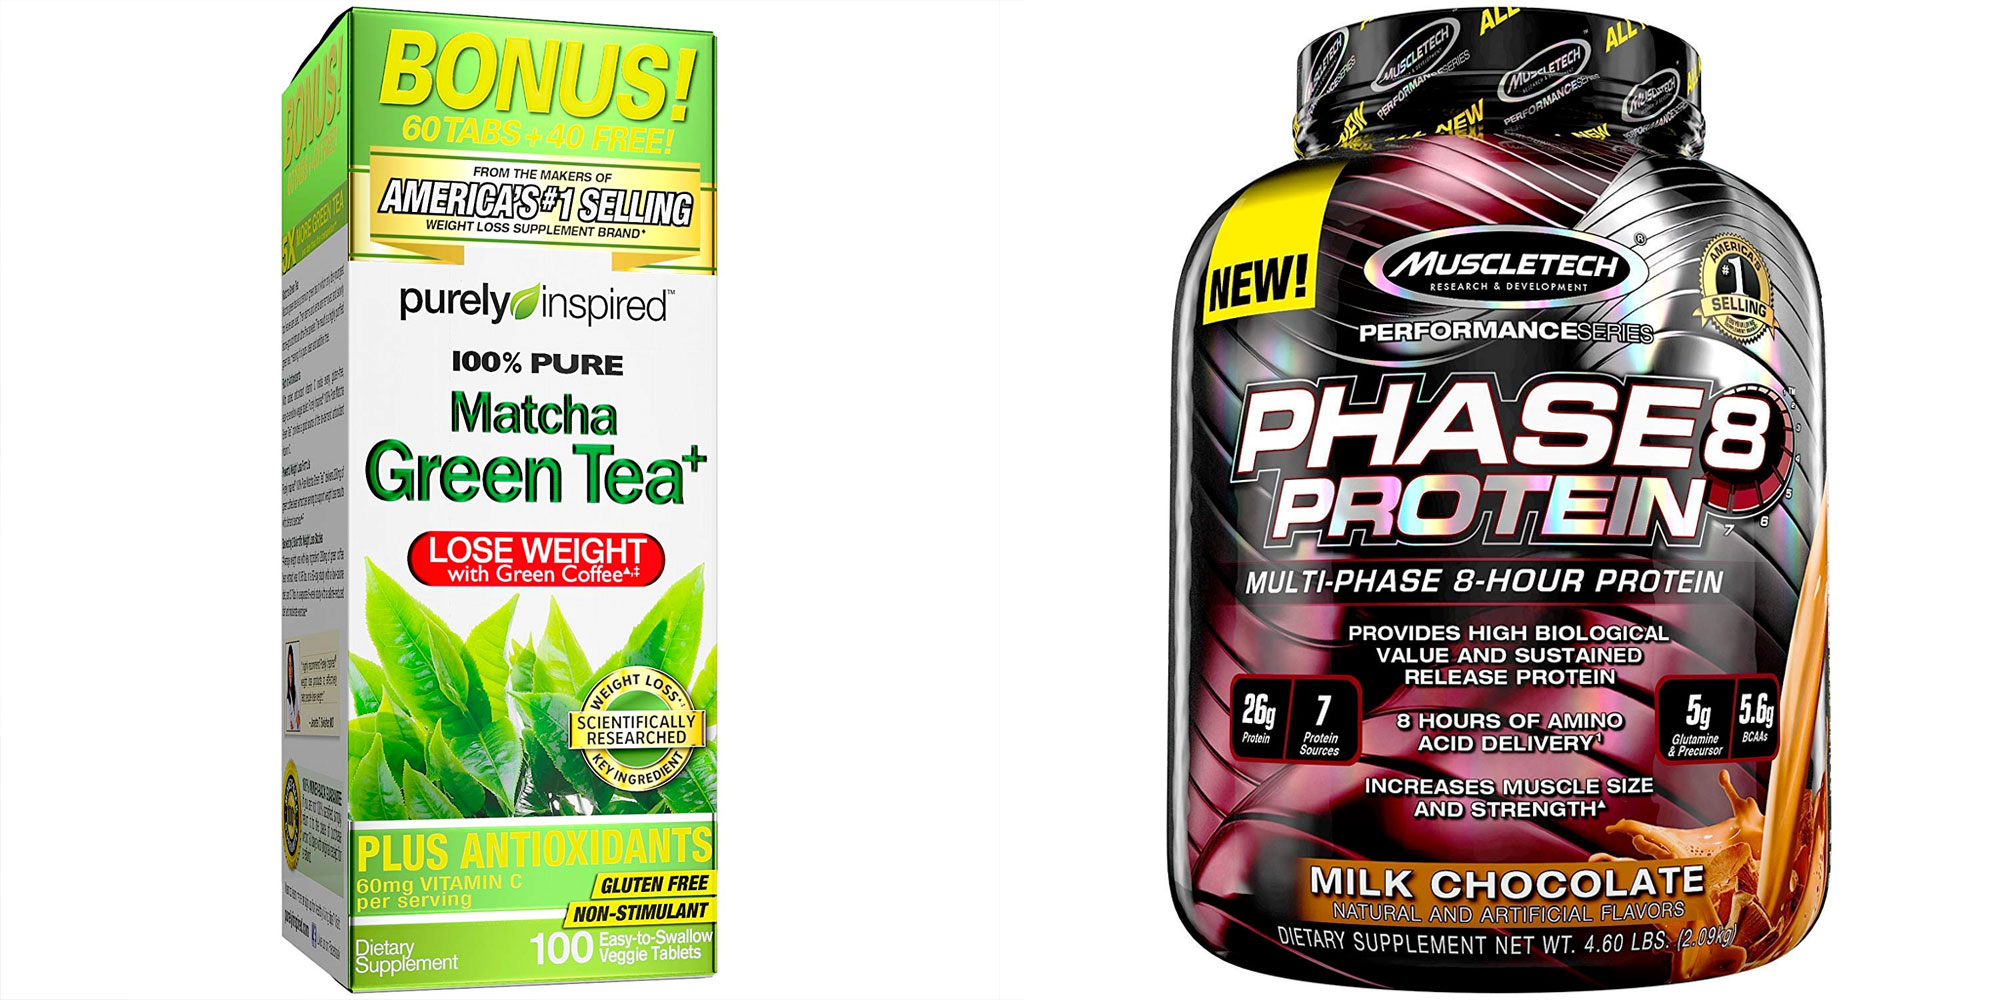 MuscleTech or Purely Inspired supplements help you stay fit from $6.50 in today's Gold Box